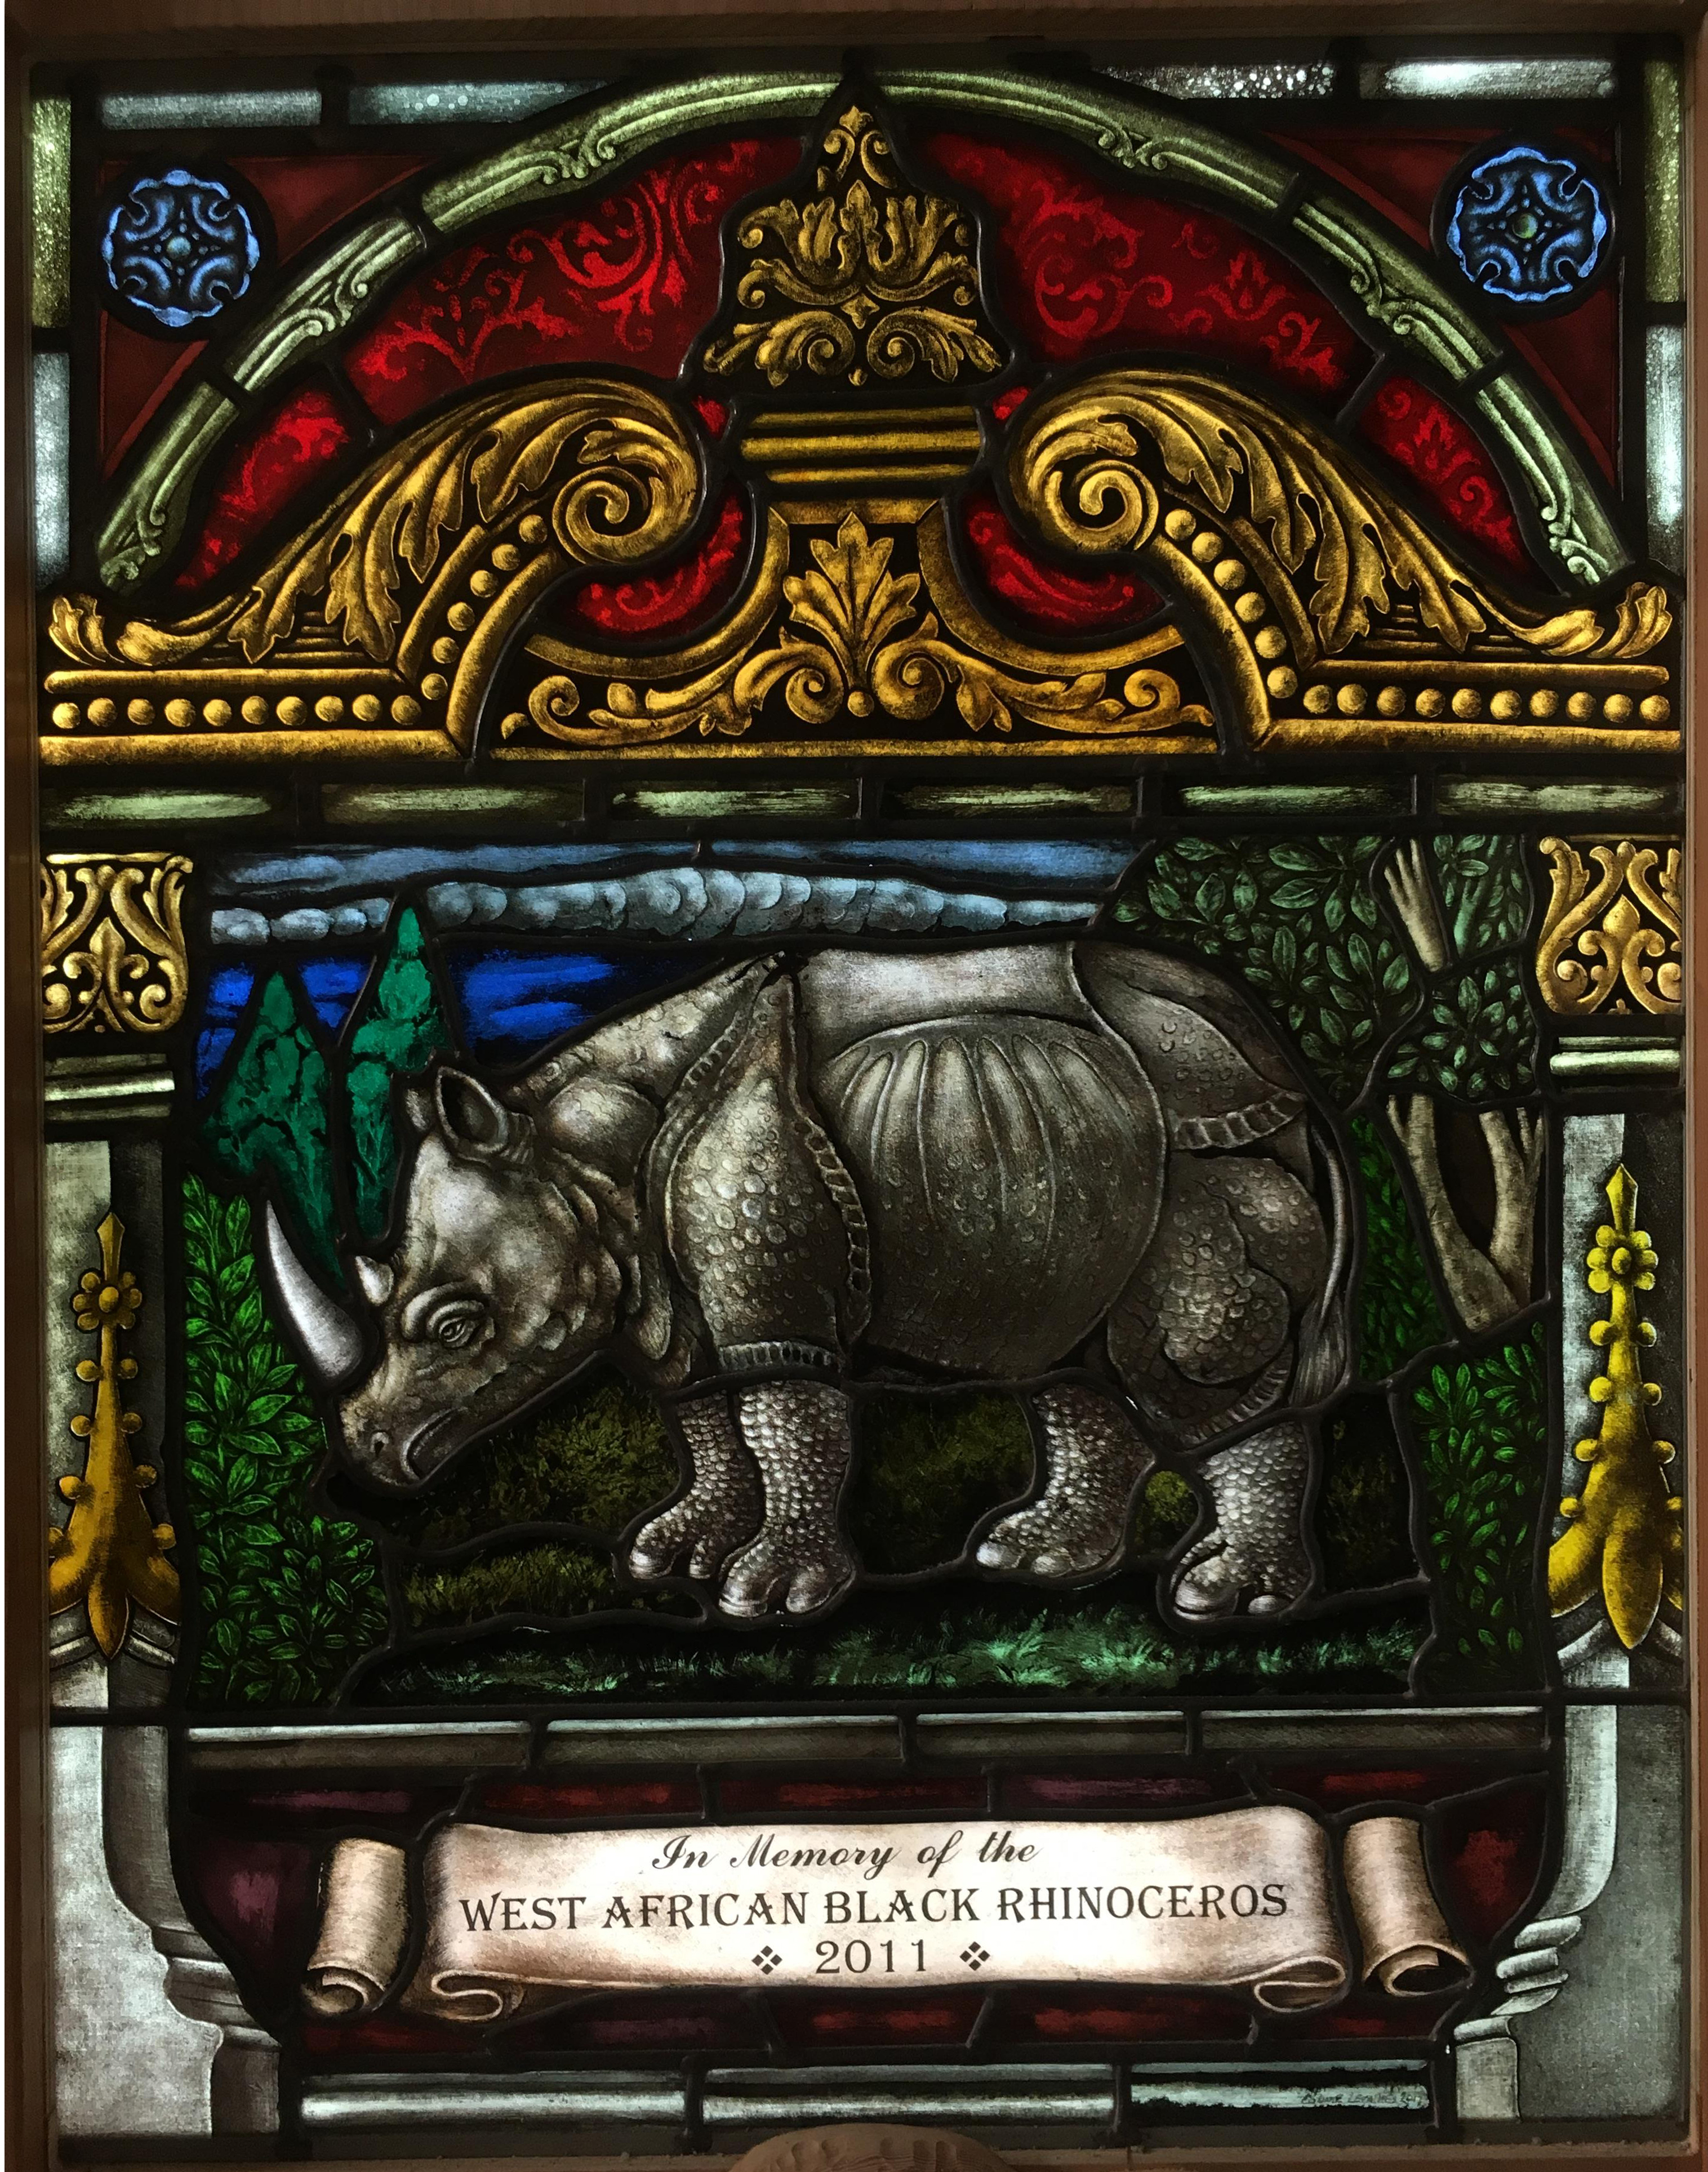 A stained glass memorial window for the extinct West African Black Rhino, inspired by Albrect Durer's woodcut of a Rhinoceros from 1515.